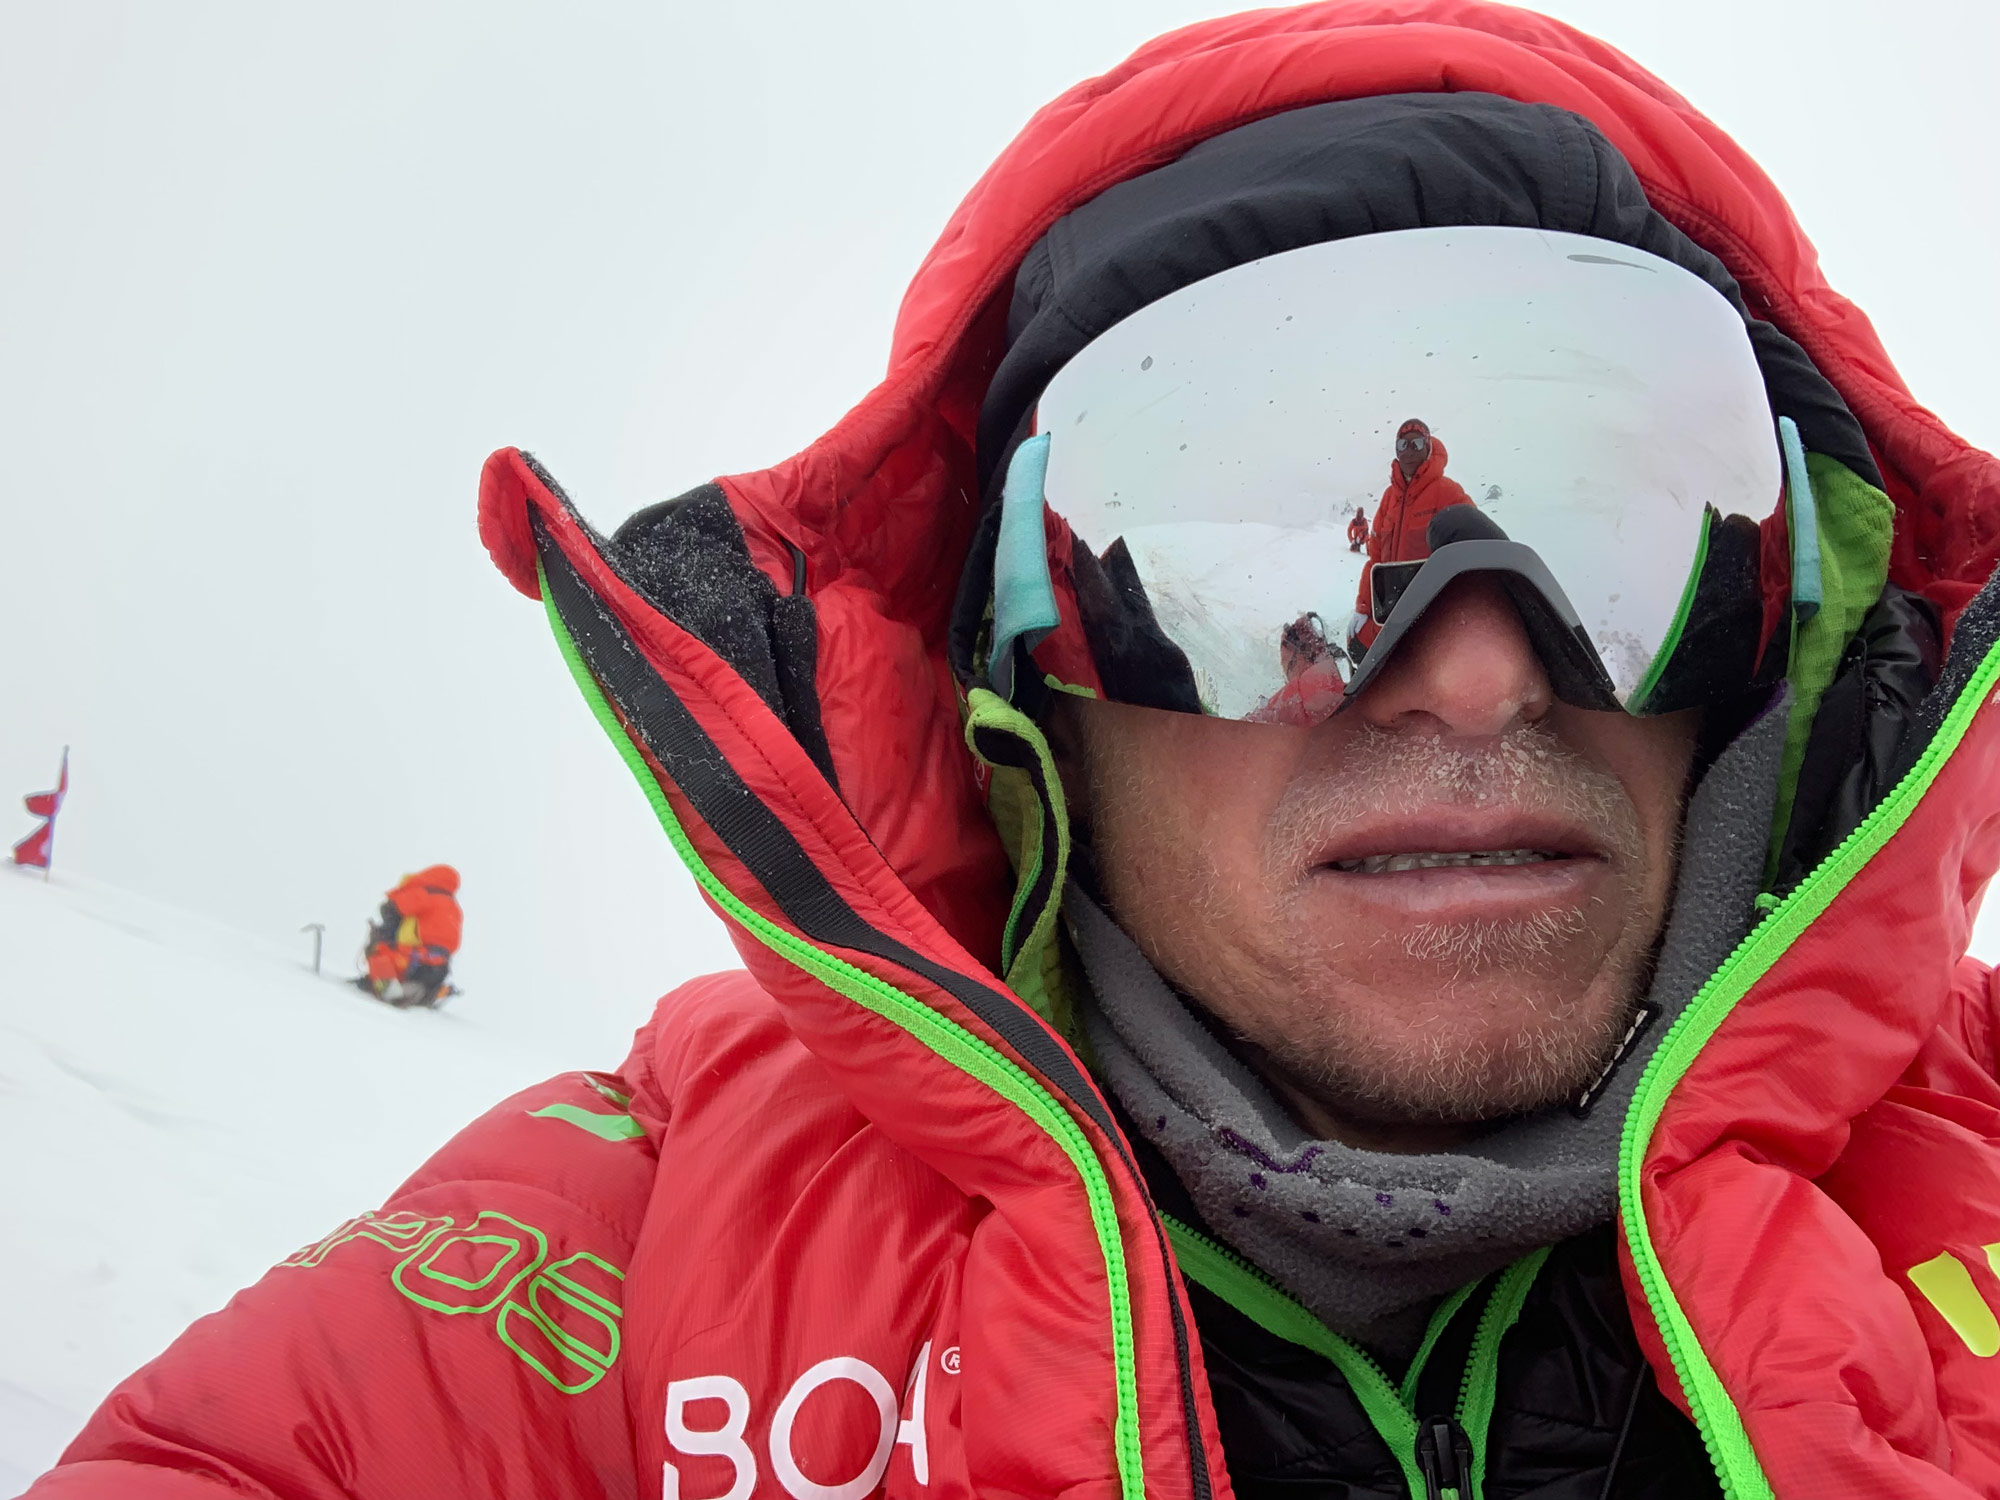 Handy Selfie am Broad Peak, Max Berger I bergundsteigen.blog